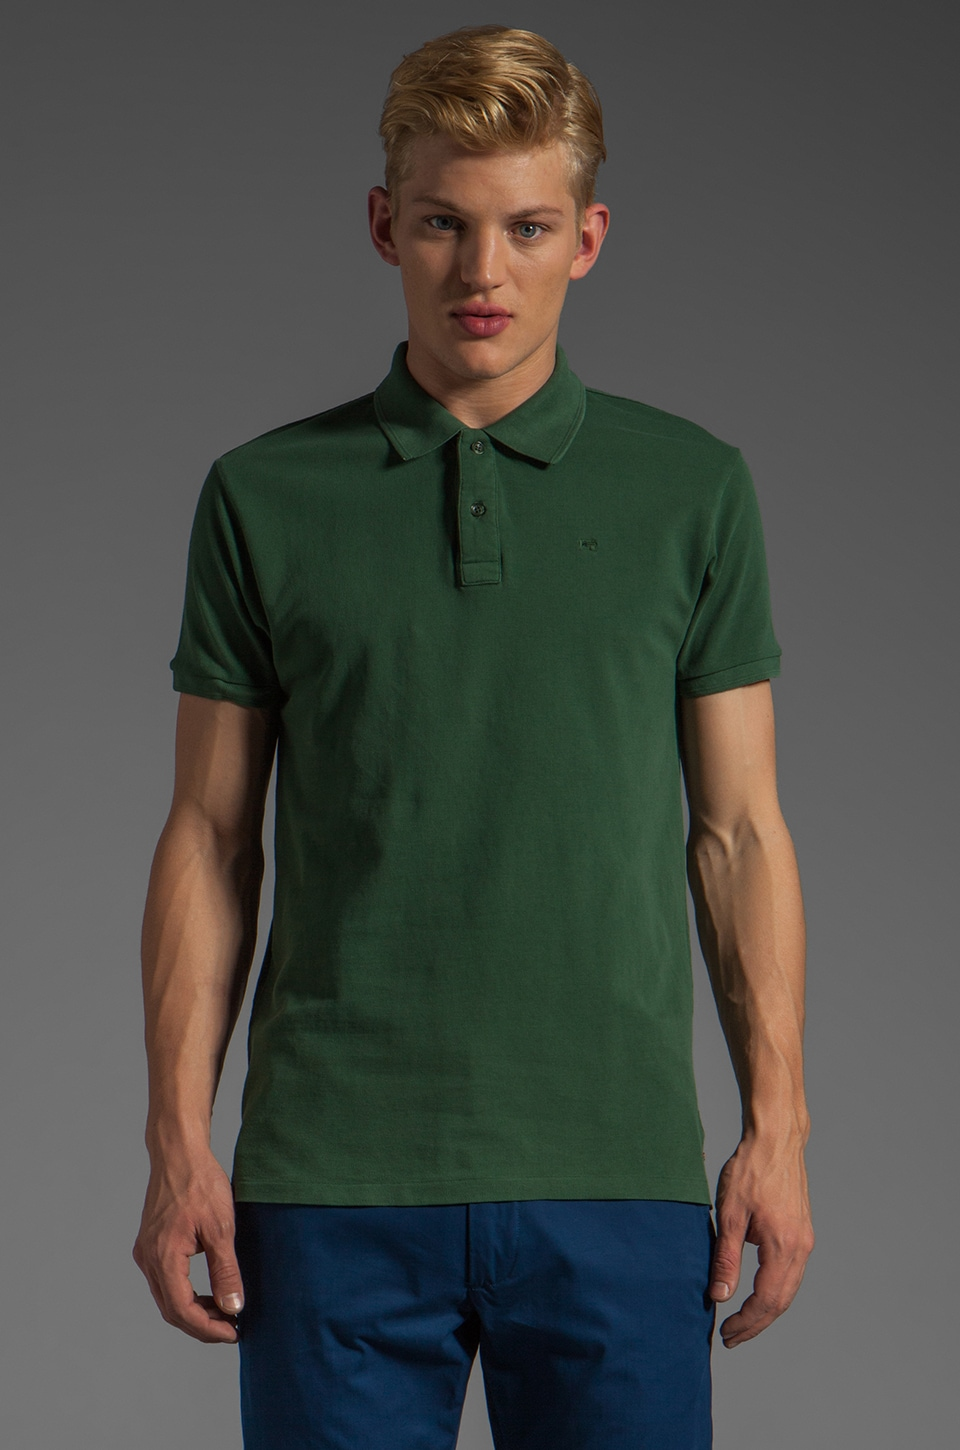 Scotch & Soda Pique Polo in Teal